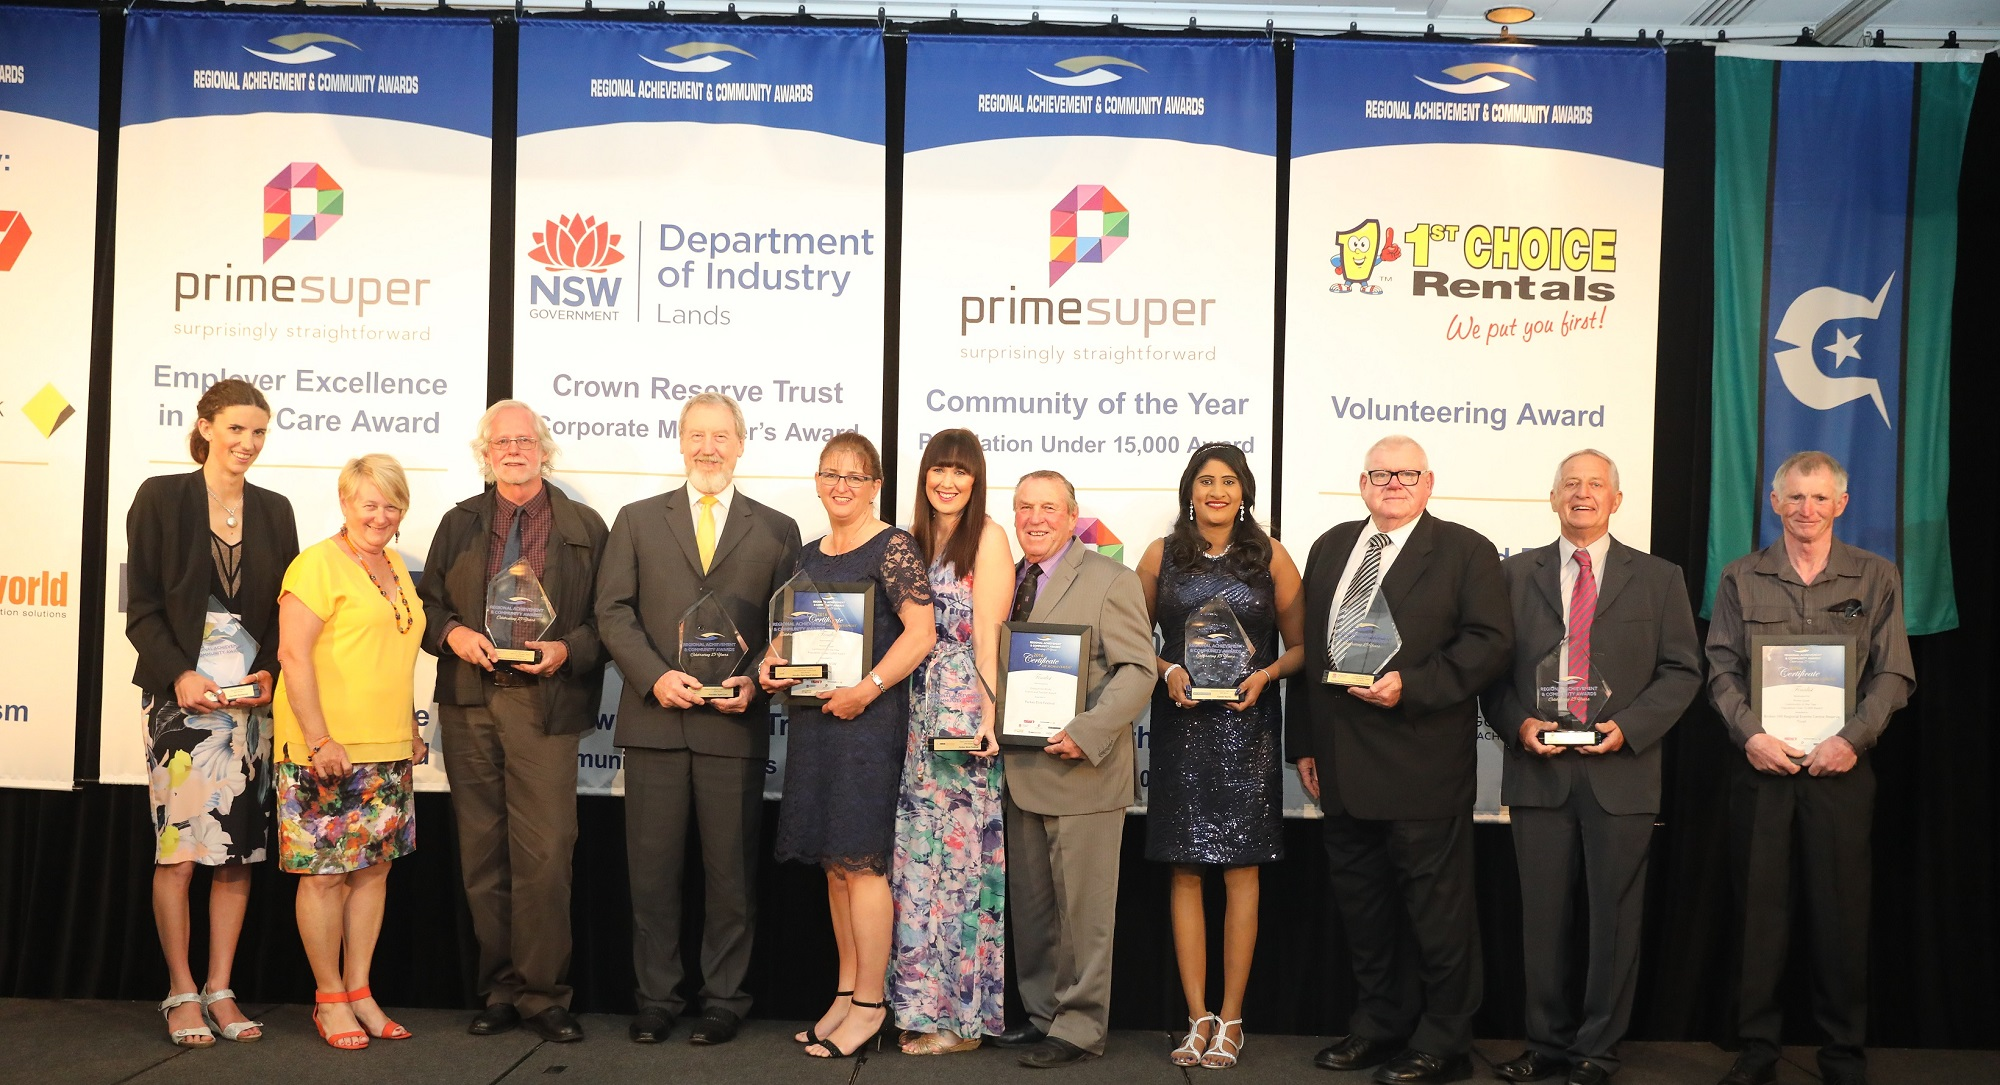 NSW/ACT Regional Achievement and Community Award Winners